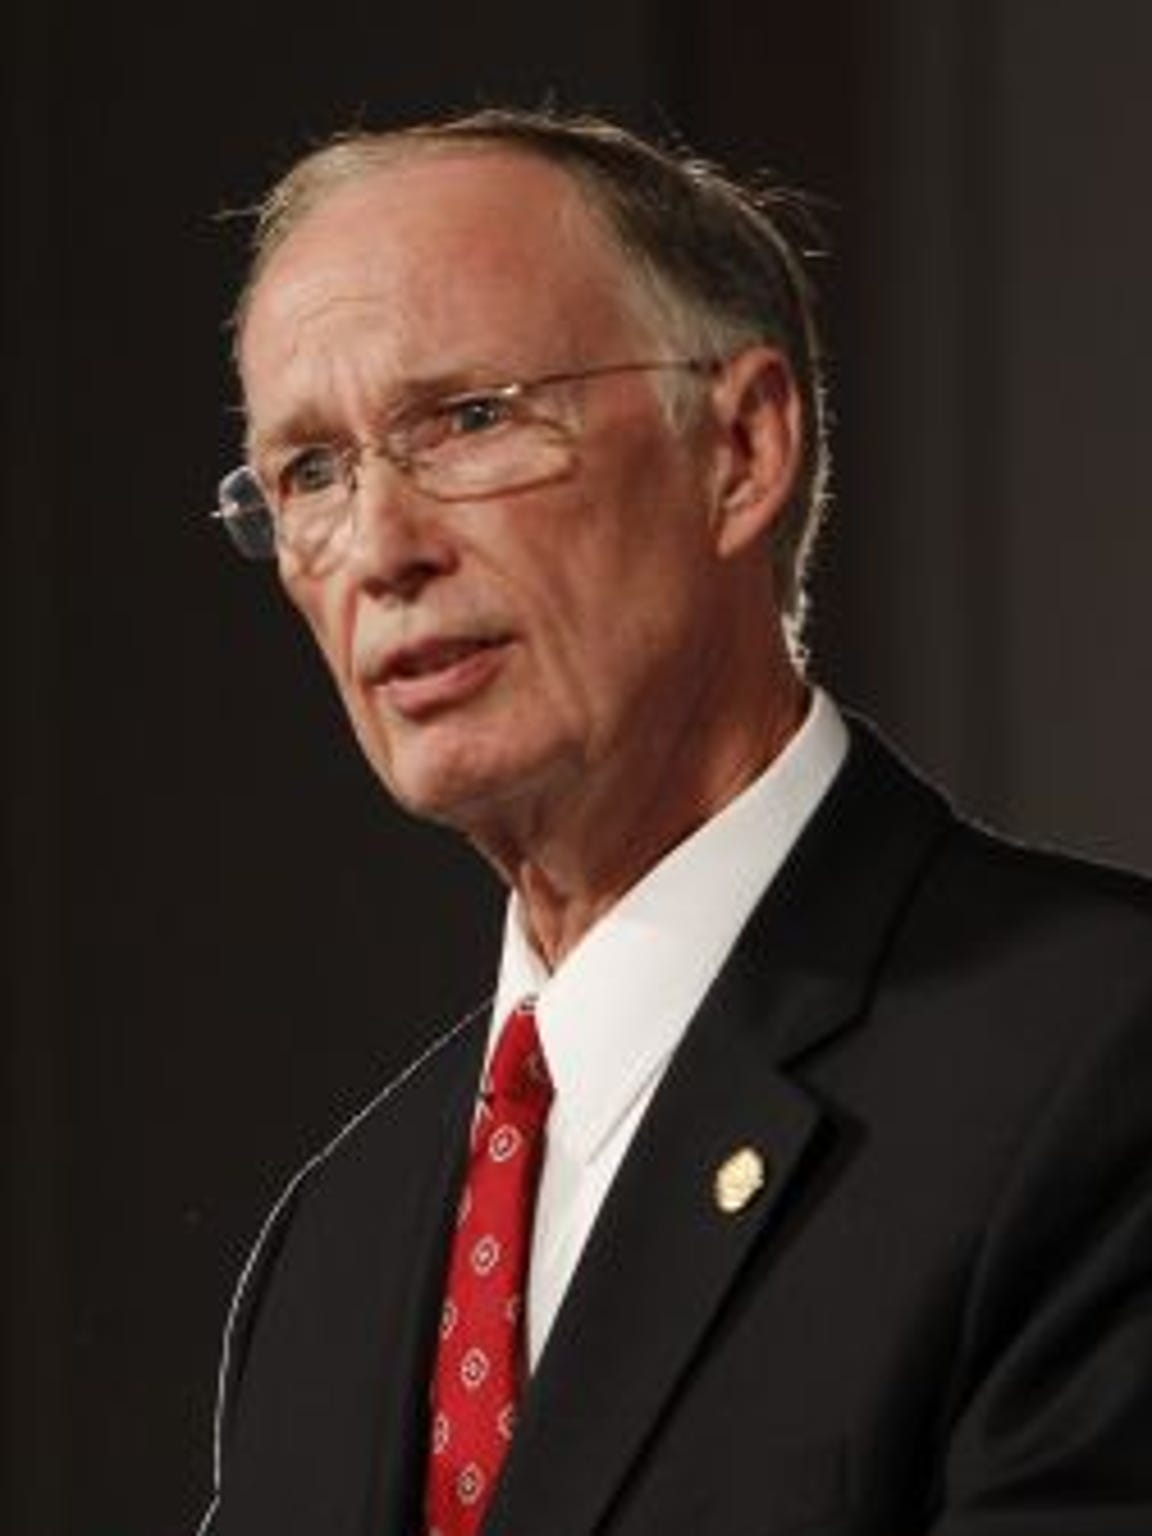 Gov. Robert Bentley says the state might explore a